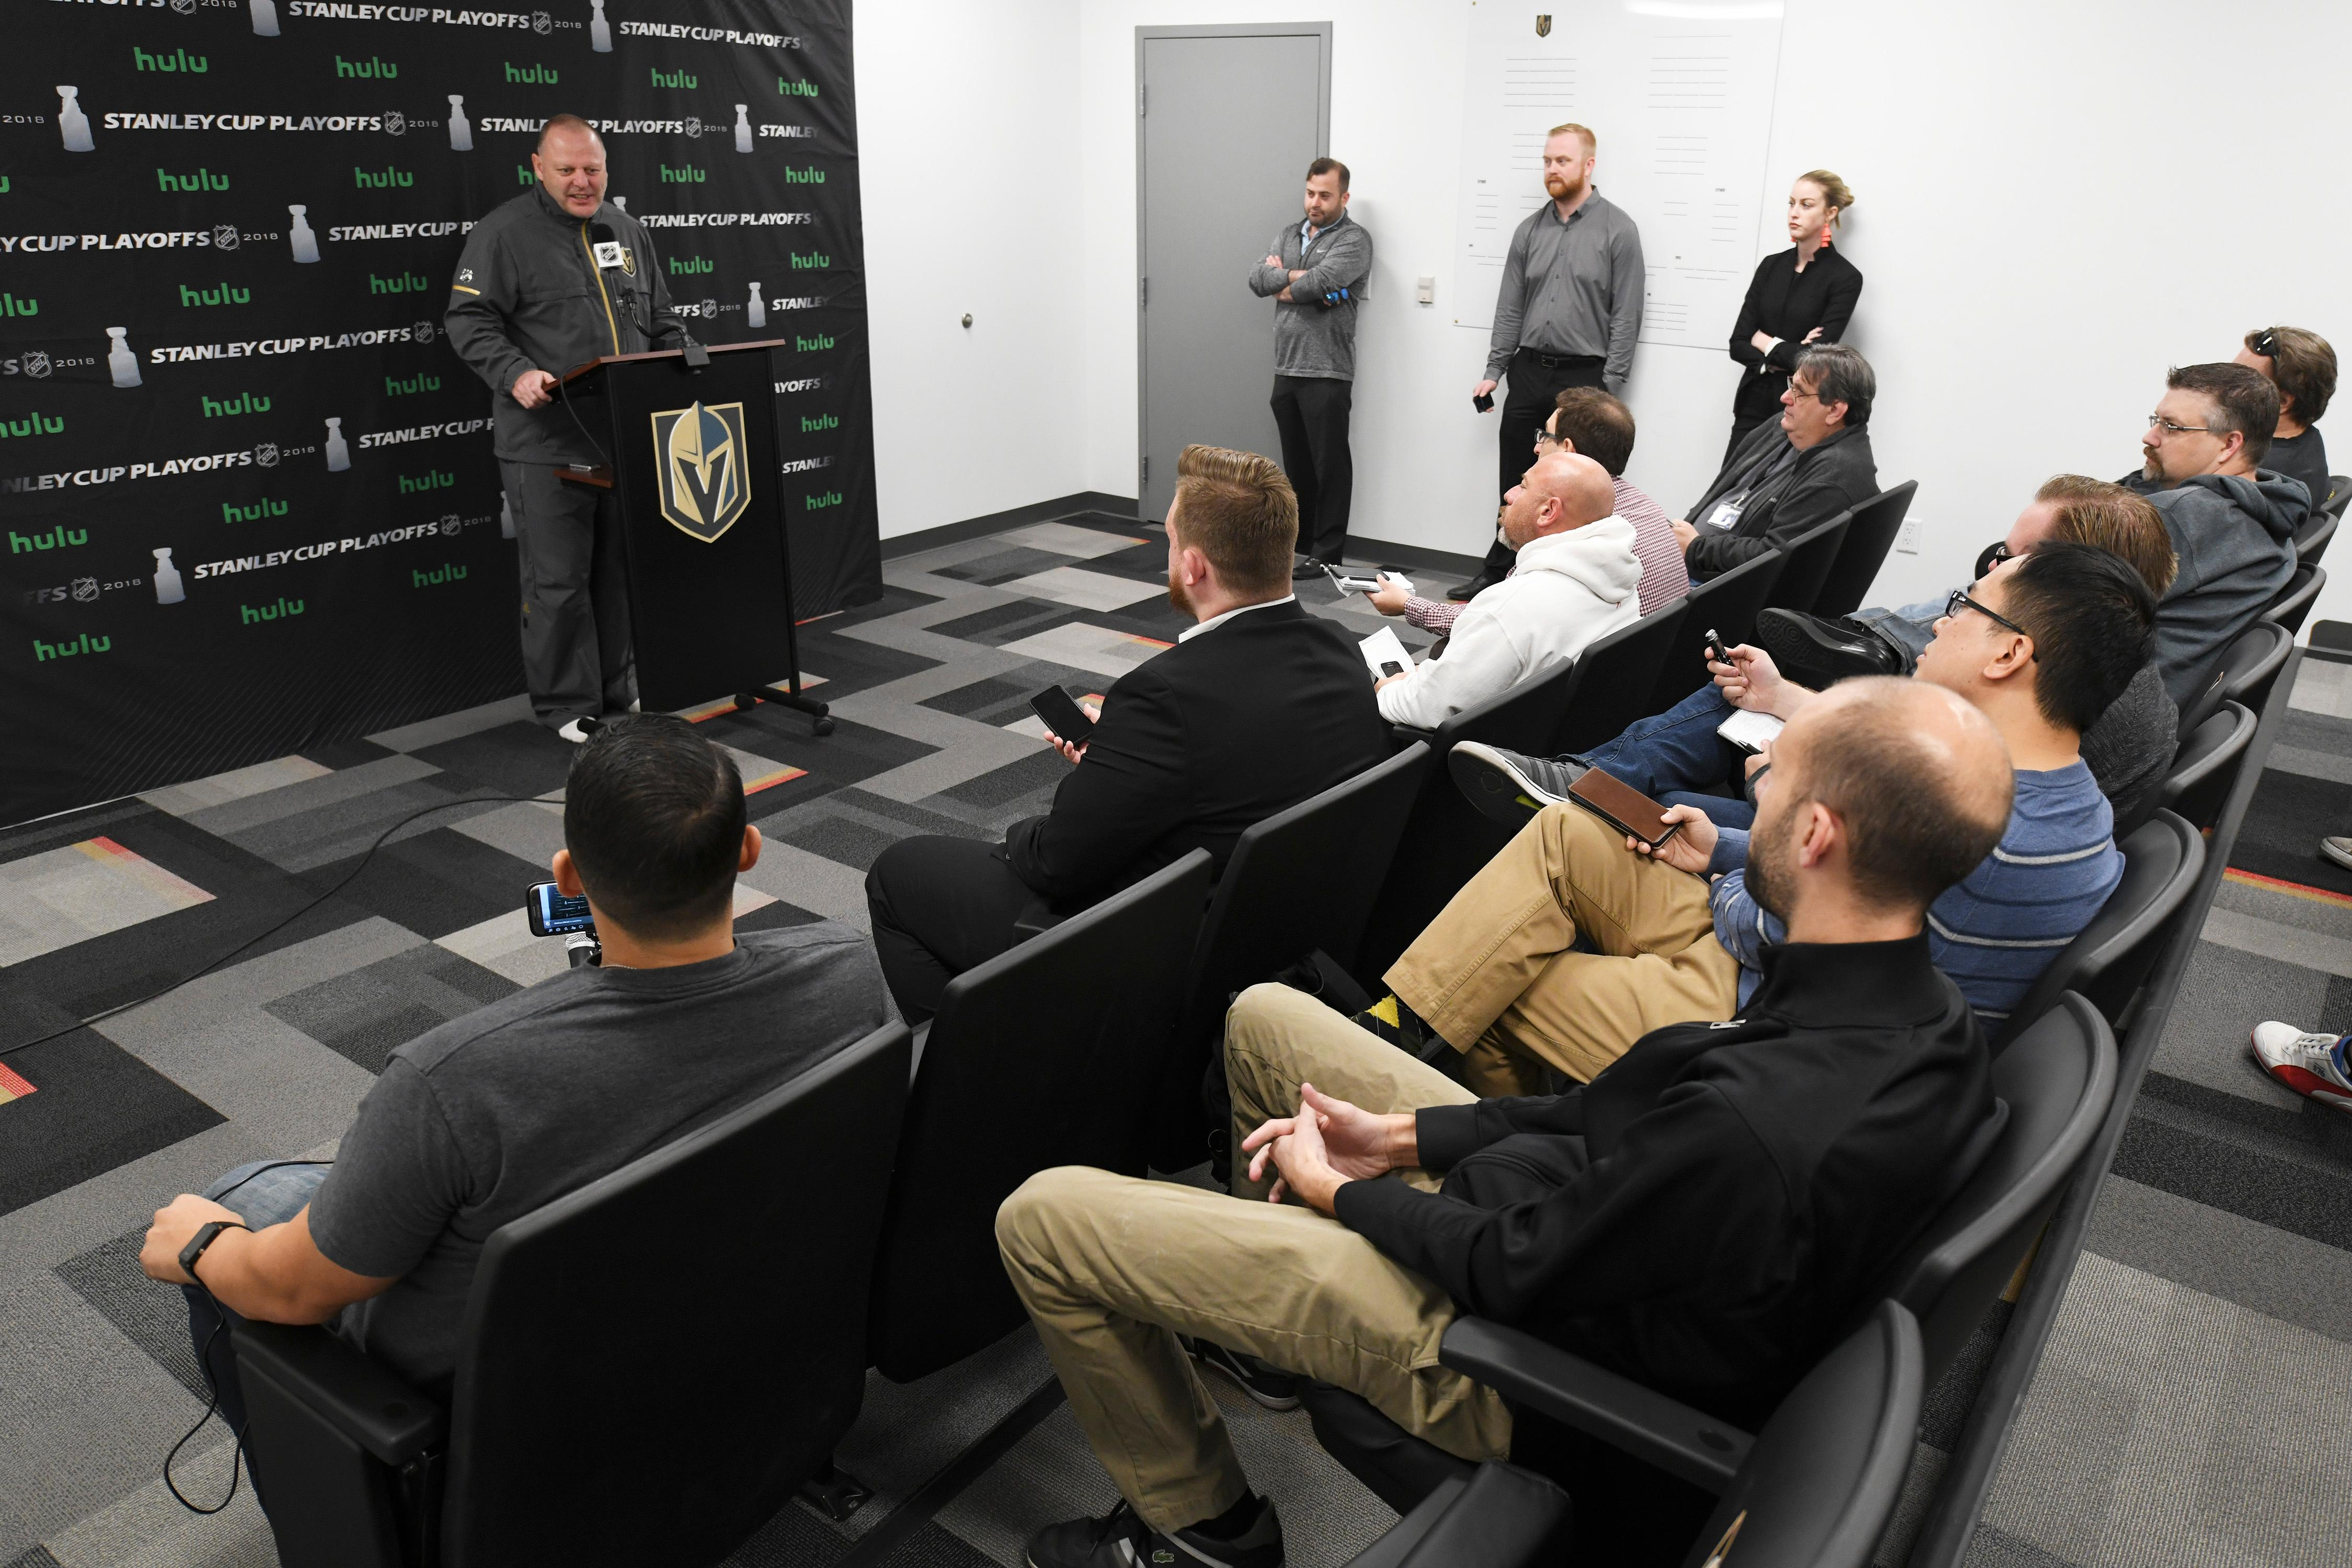 Vegas Golden Knights head coach Gerard Gallant addresses the media after the Golden Knights practice Friday, April 20, 2018, at City National Arena in Las Vegas. CREDIT: Sam Morris/Las Vegas News Bureau